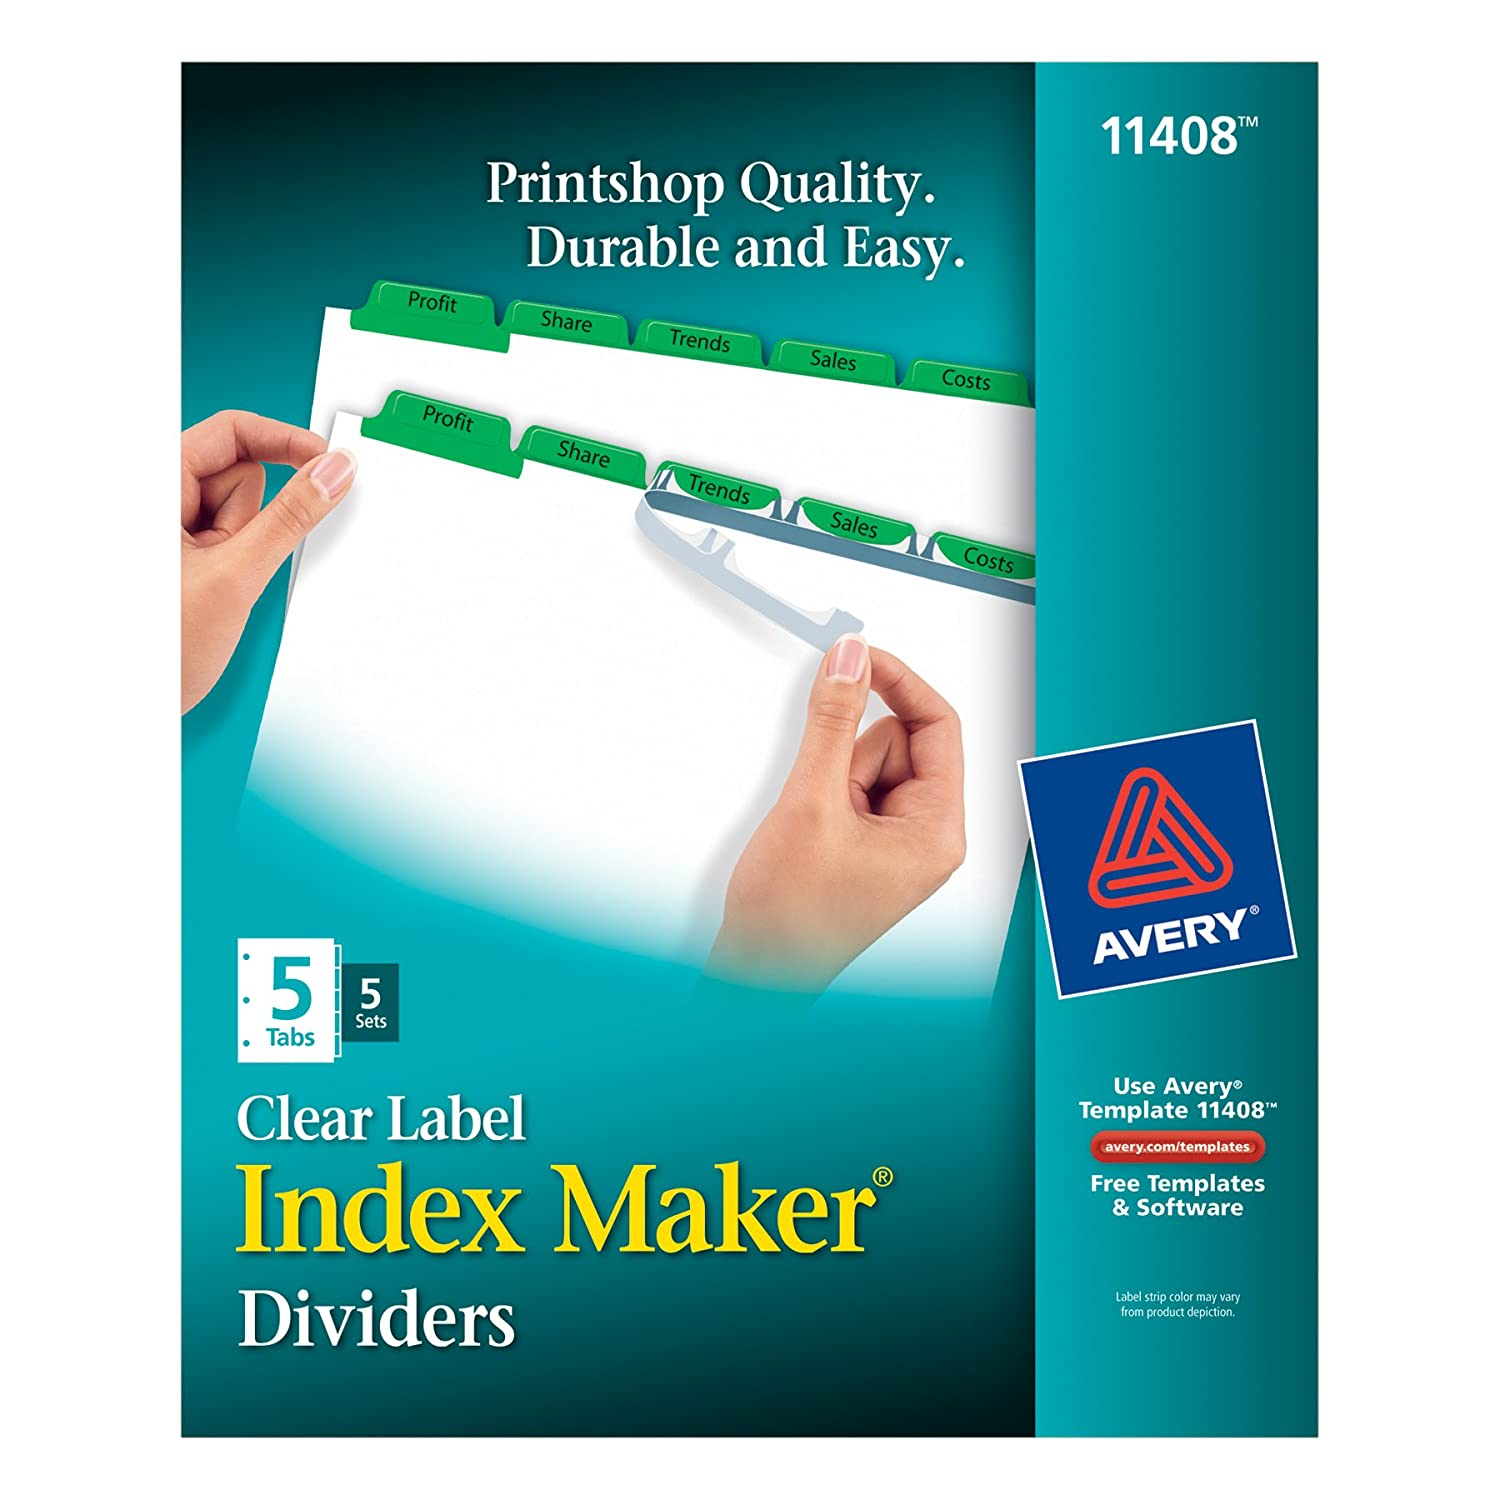 Amazon Avery Index Maker Dividers 5 Tab White 5 Sets 11408